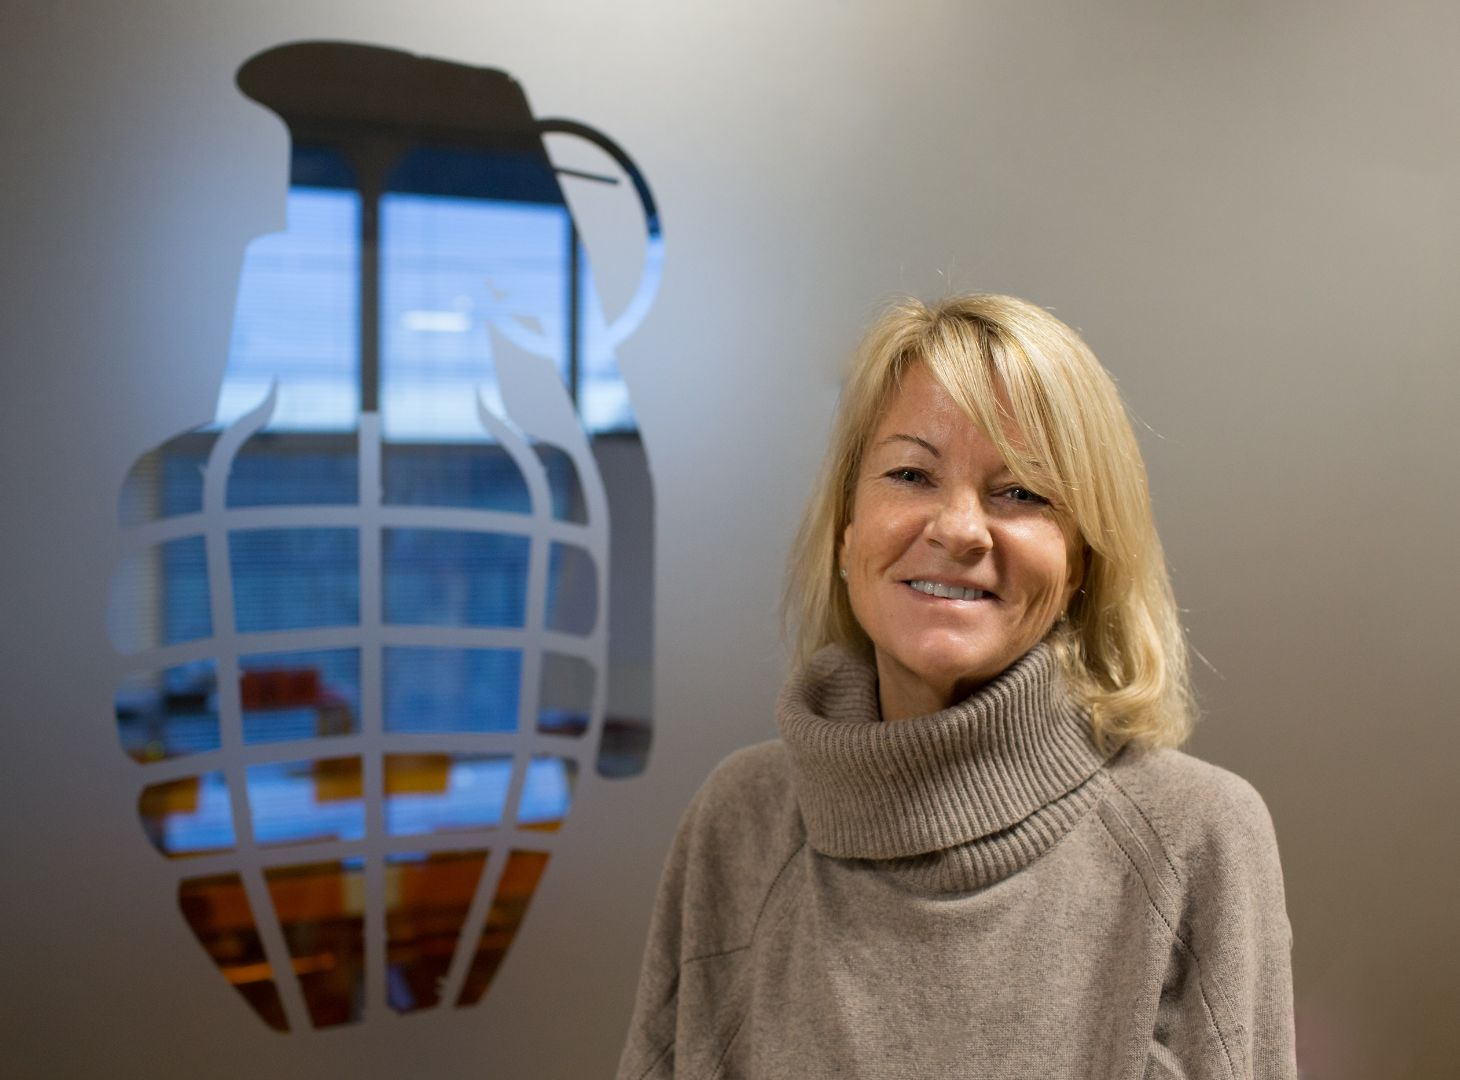 Image of Juliet Barratt, Co-Founder of Grenade stood next to Grenade Logo